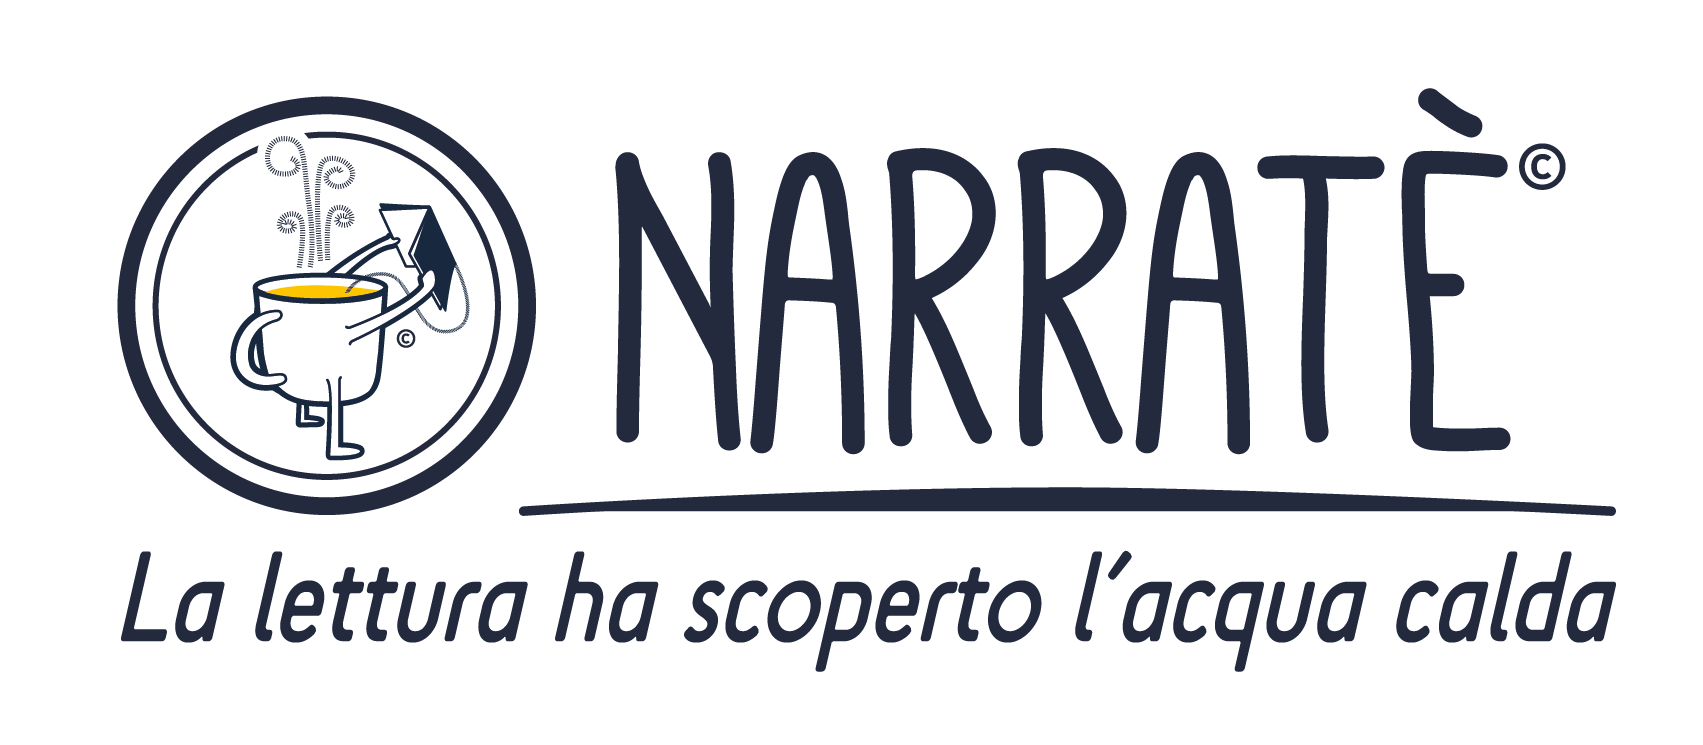 Narrathe